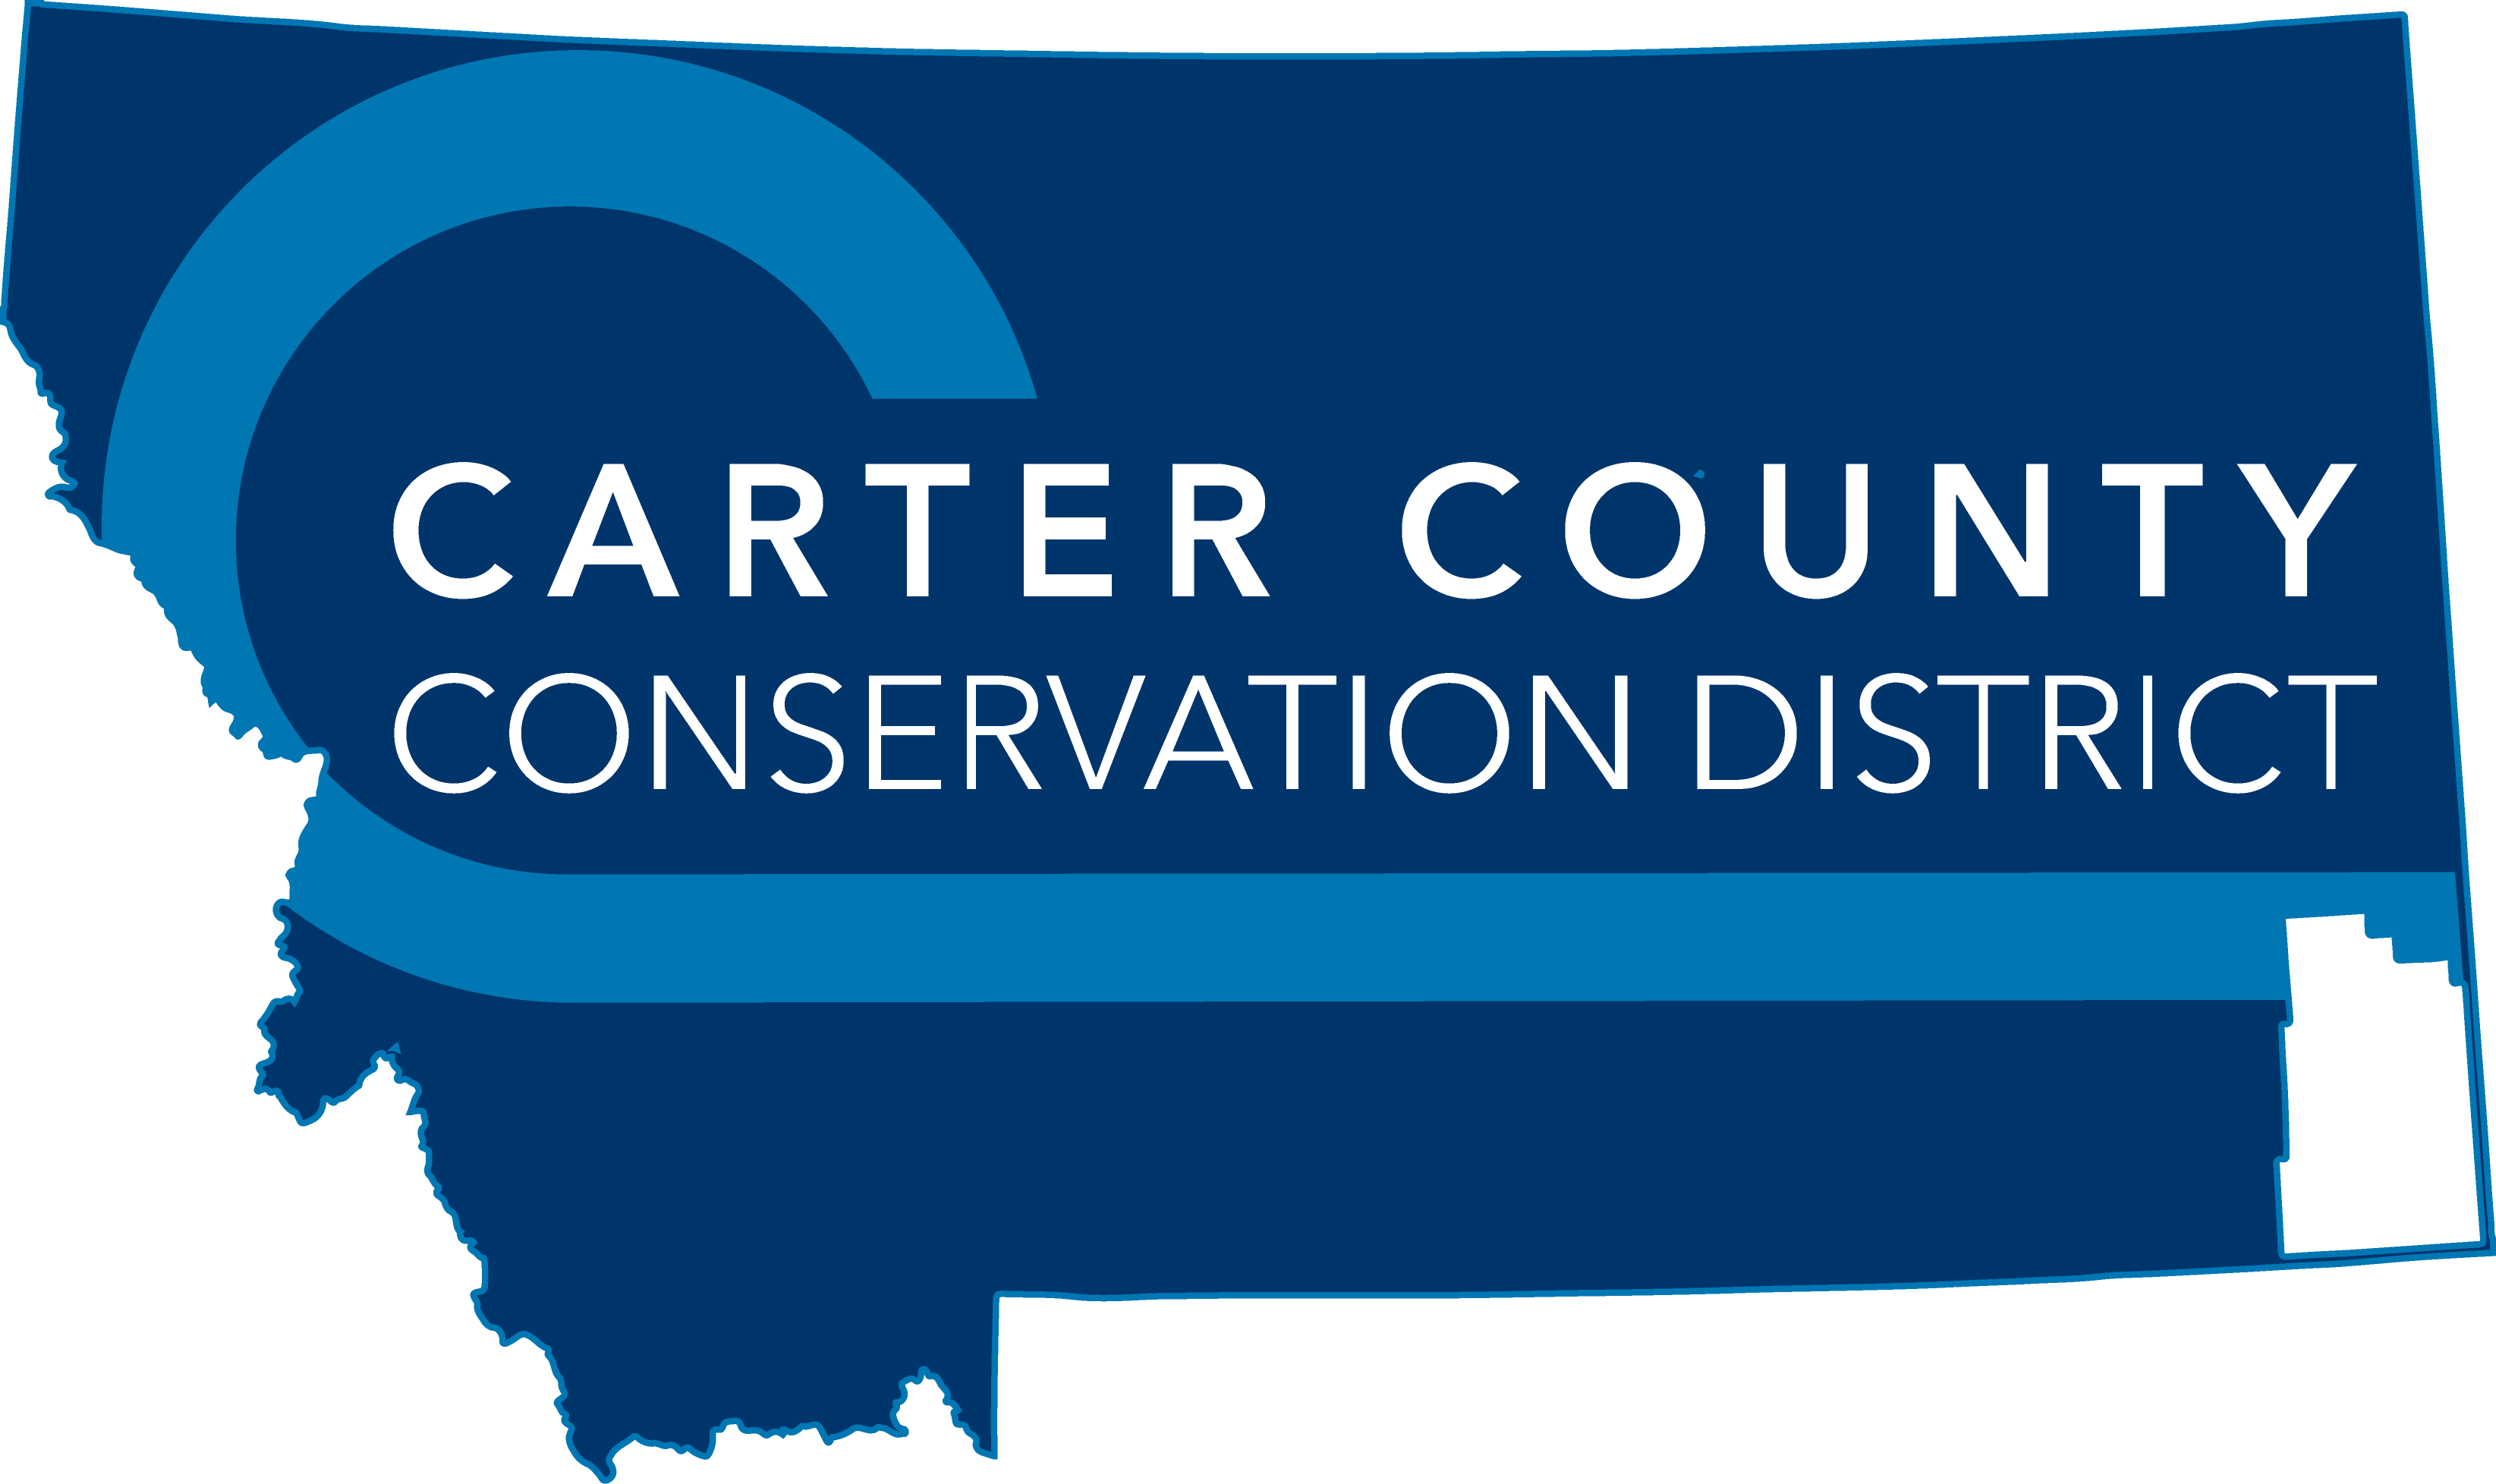 Carter County Conservation District